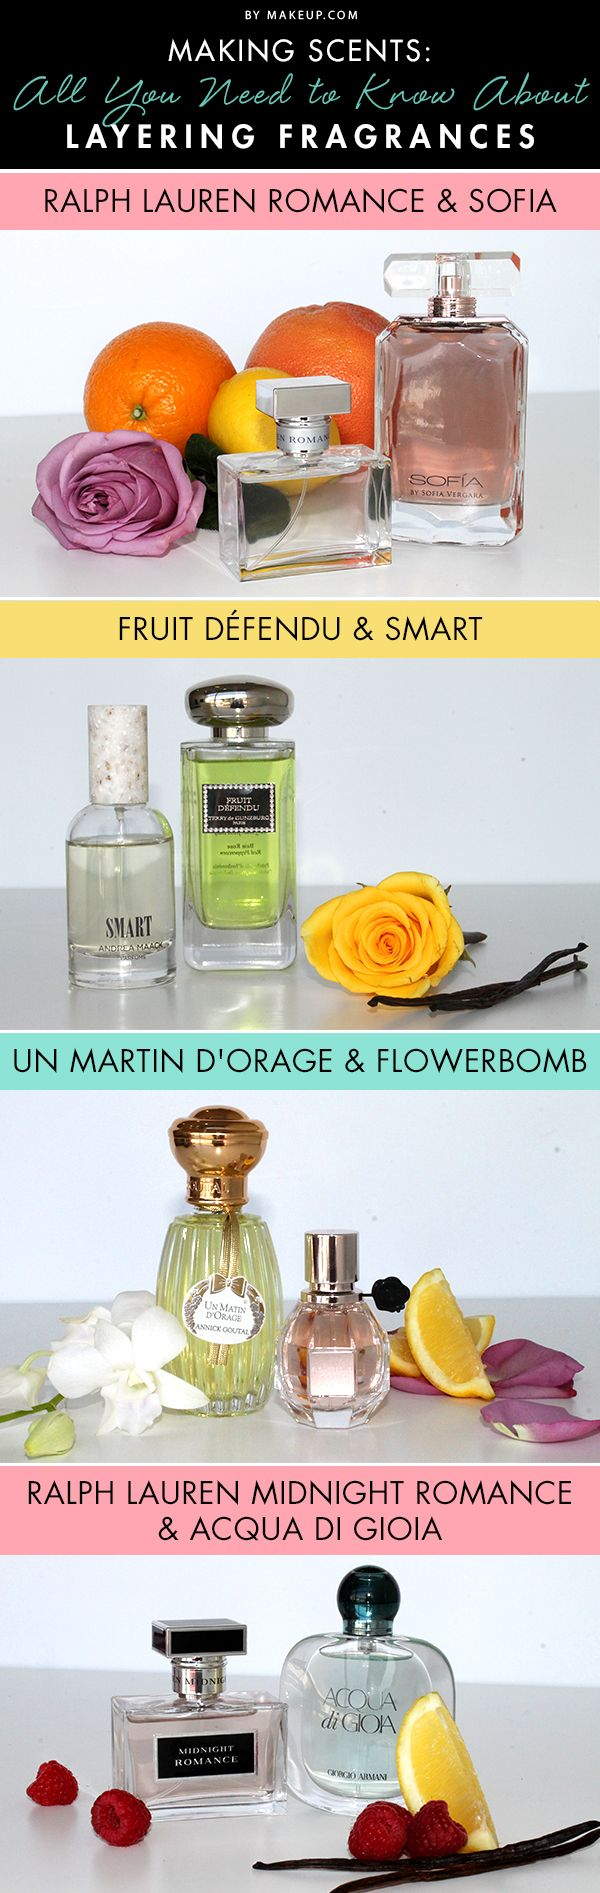 When you layer fragrances, the scents should complement each other, not fight each other! Here's how to layer your perfume properly.